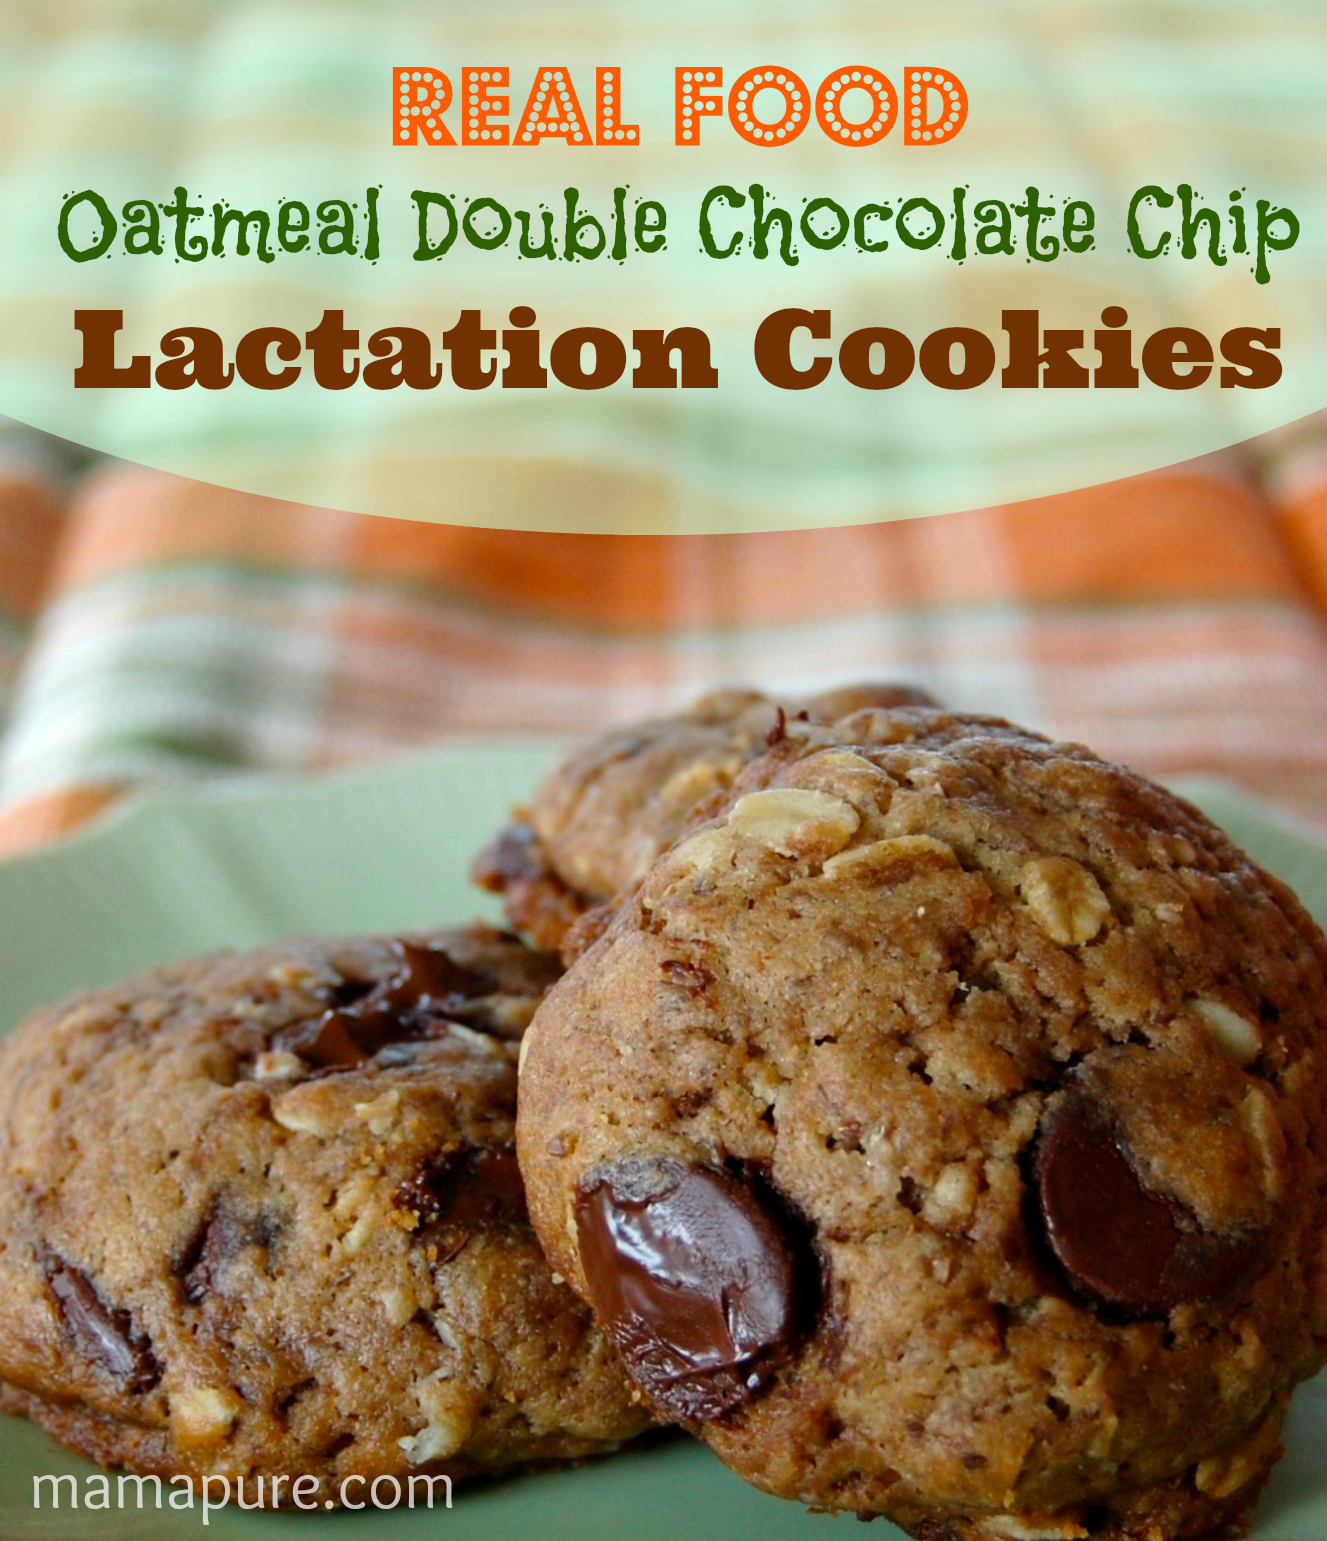 Real Food Oatmeal Double Chocolate Chip #Lactation Cookies ~ #Nursing Moms can make these cookies which are chock-full of ingredients to support milk supply and lead to stress-free #breastfeeding